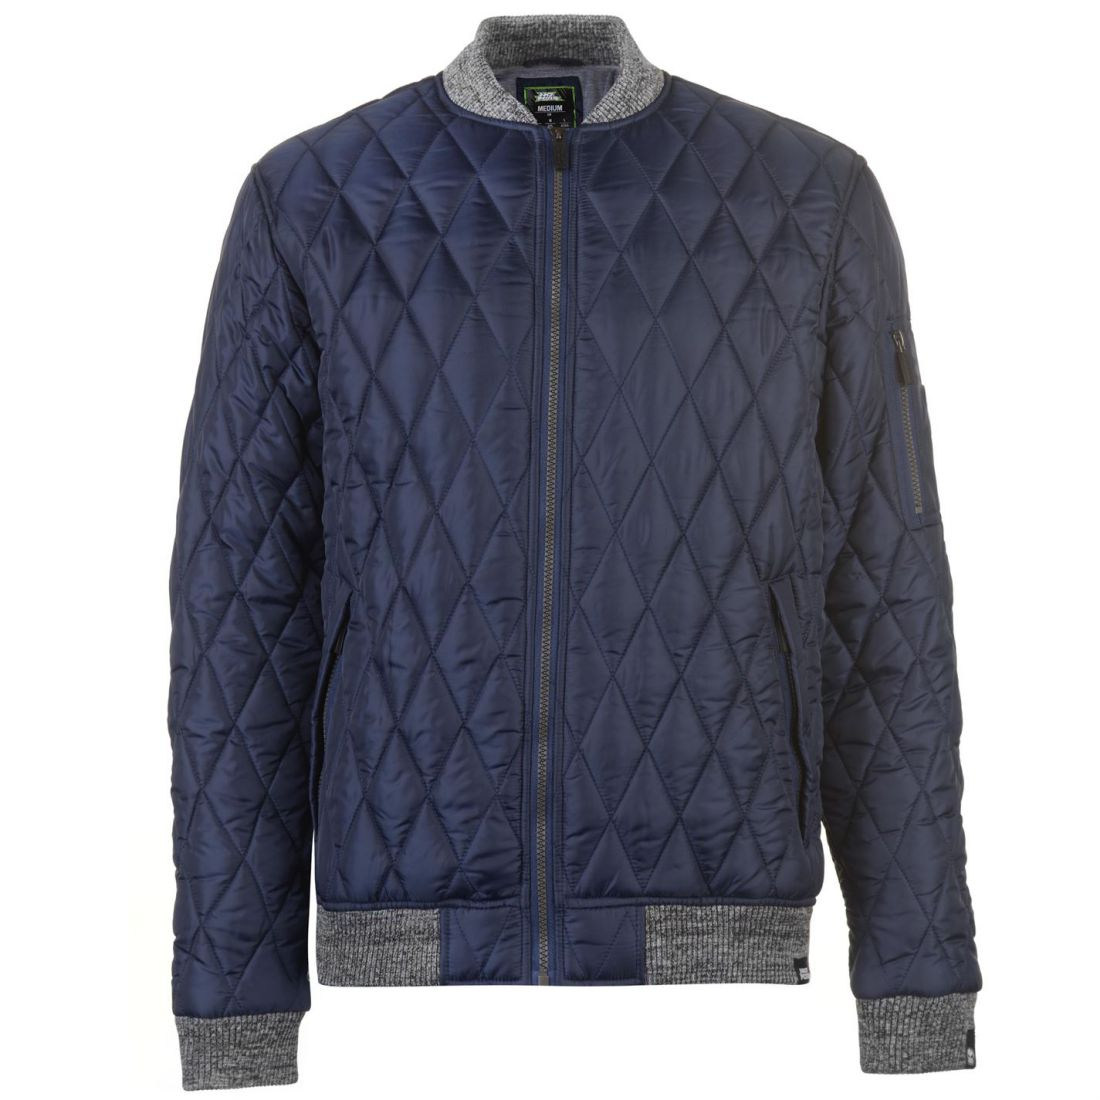 No-Fear-Quilted-Bomber-Jacket-Mens-Gents-Coat-Top-Full-Length-Sleeve-Zip-Zipped thumbnail 4